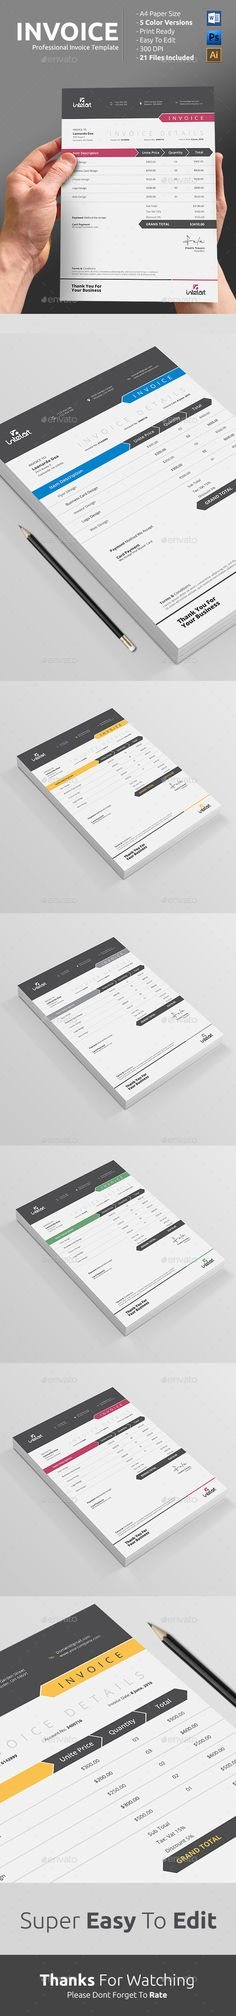 90 Best Invoices Images On Pinterest Invoice Template Invoice